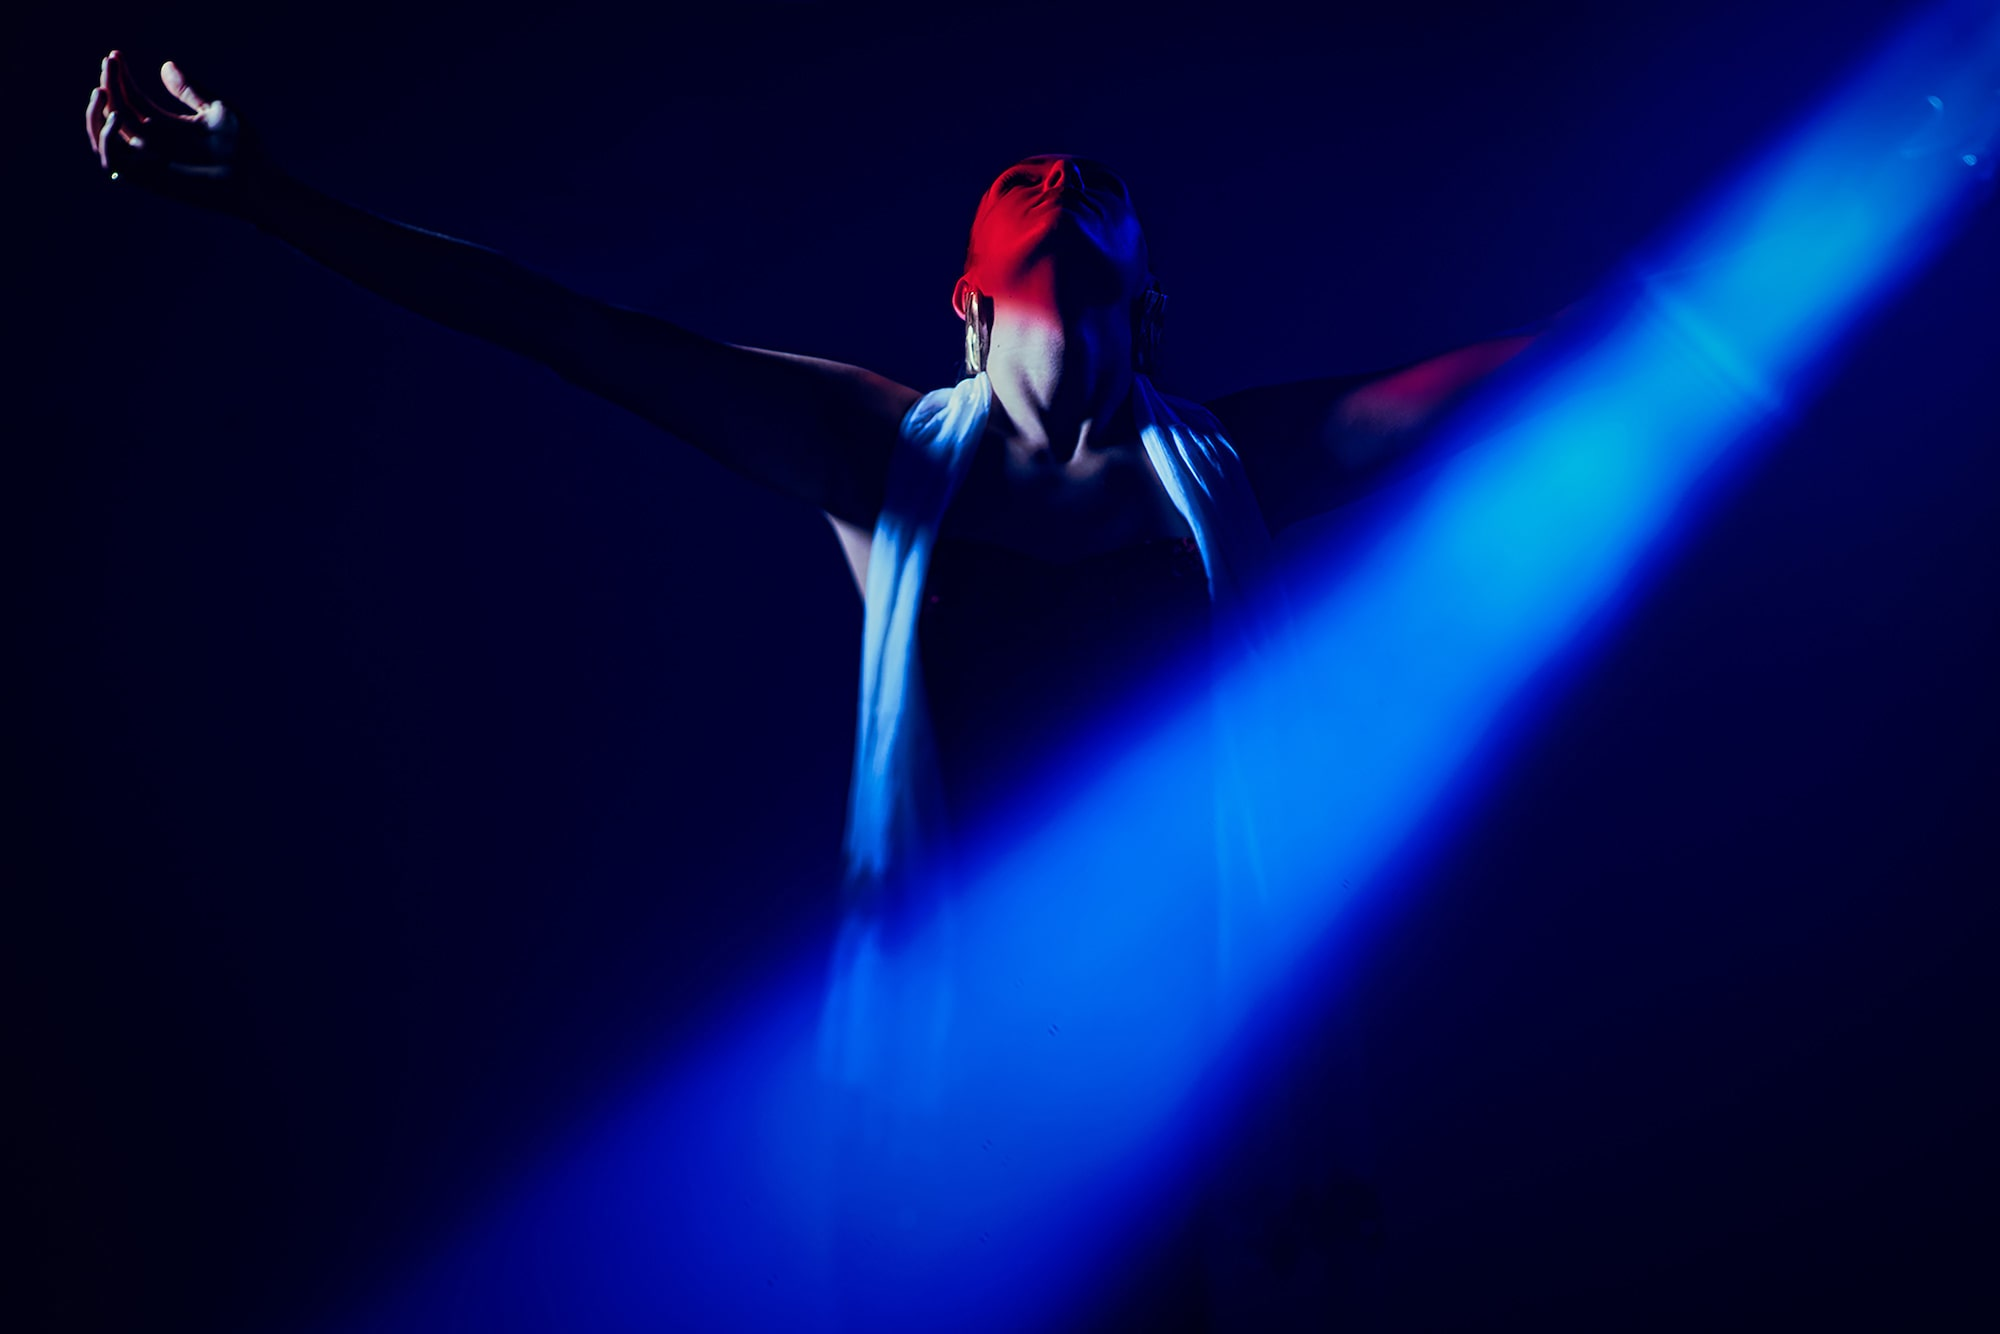 frank doorhof sony alpha 7RIII lady stands with her arms outstretched in the dark with a blue light shining across her